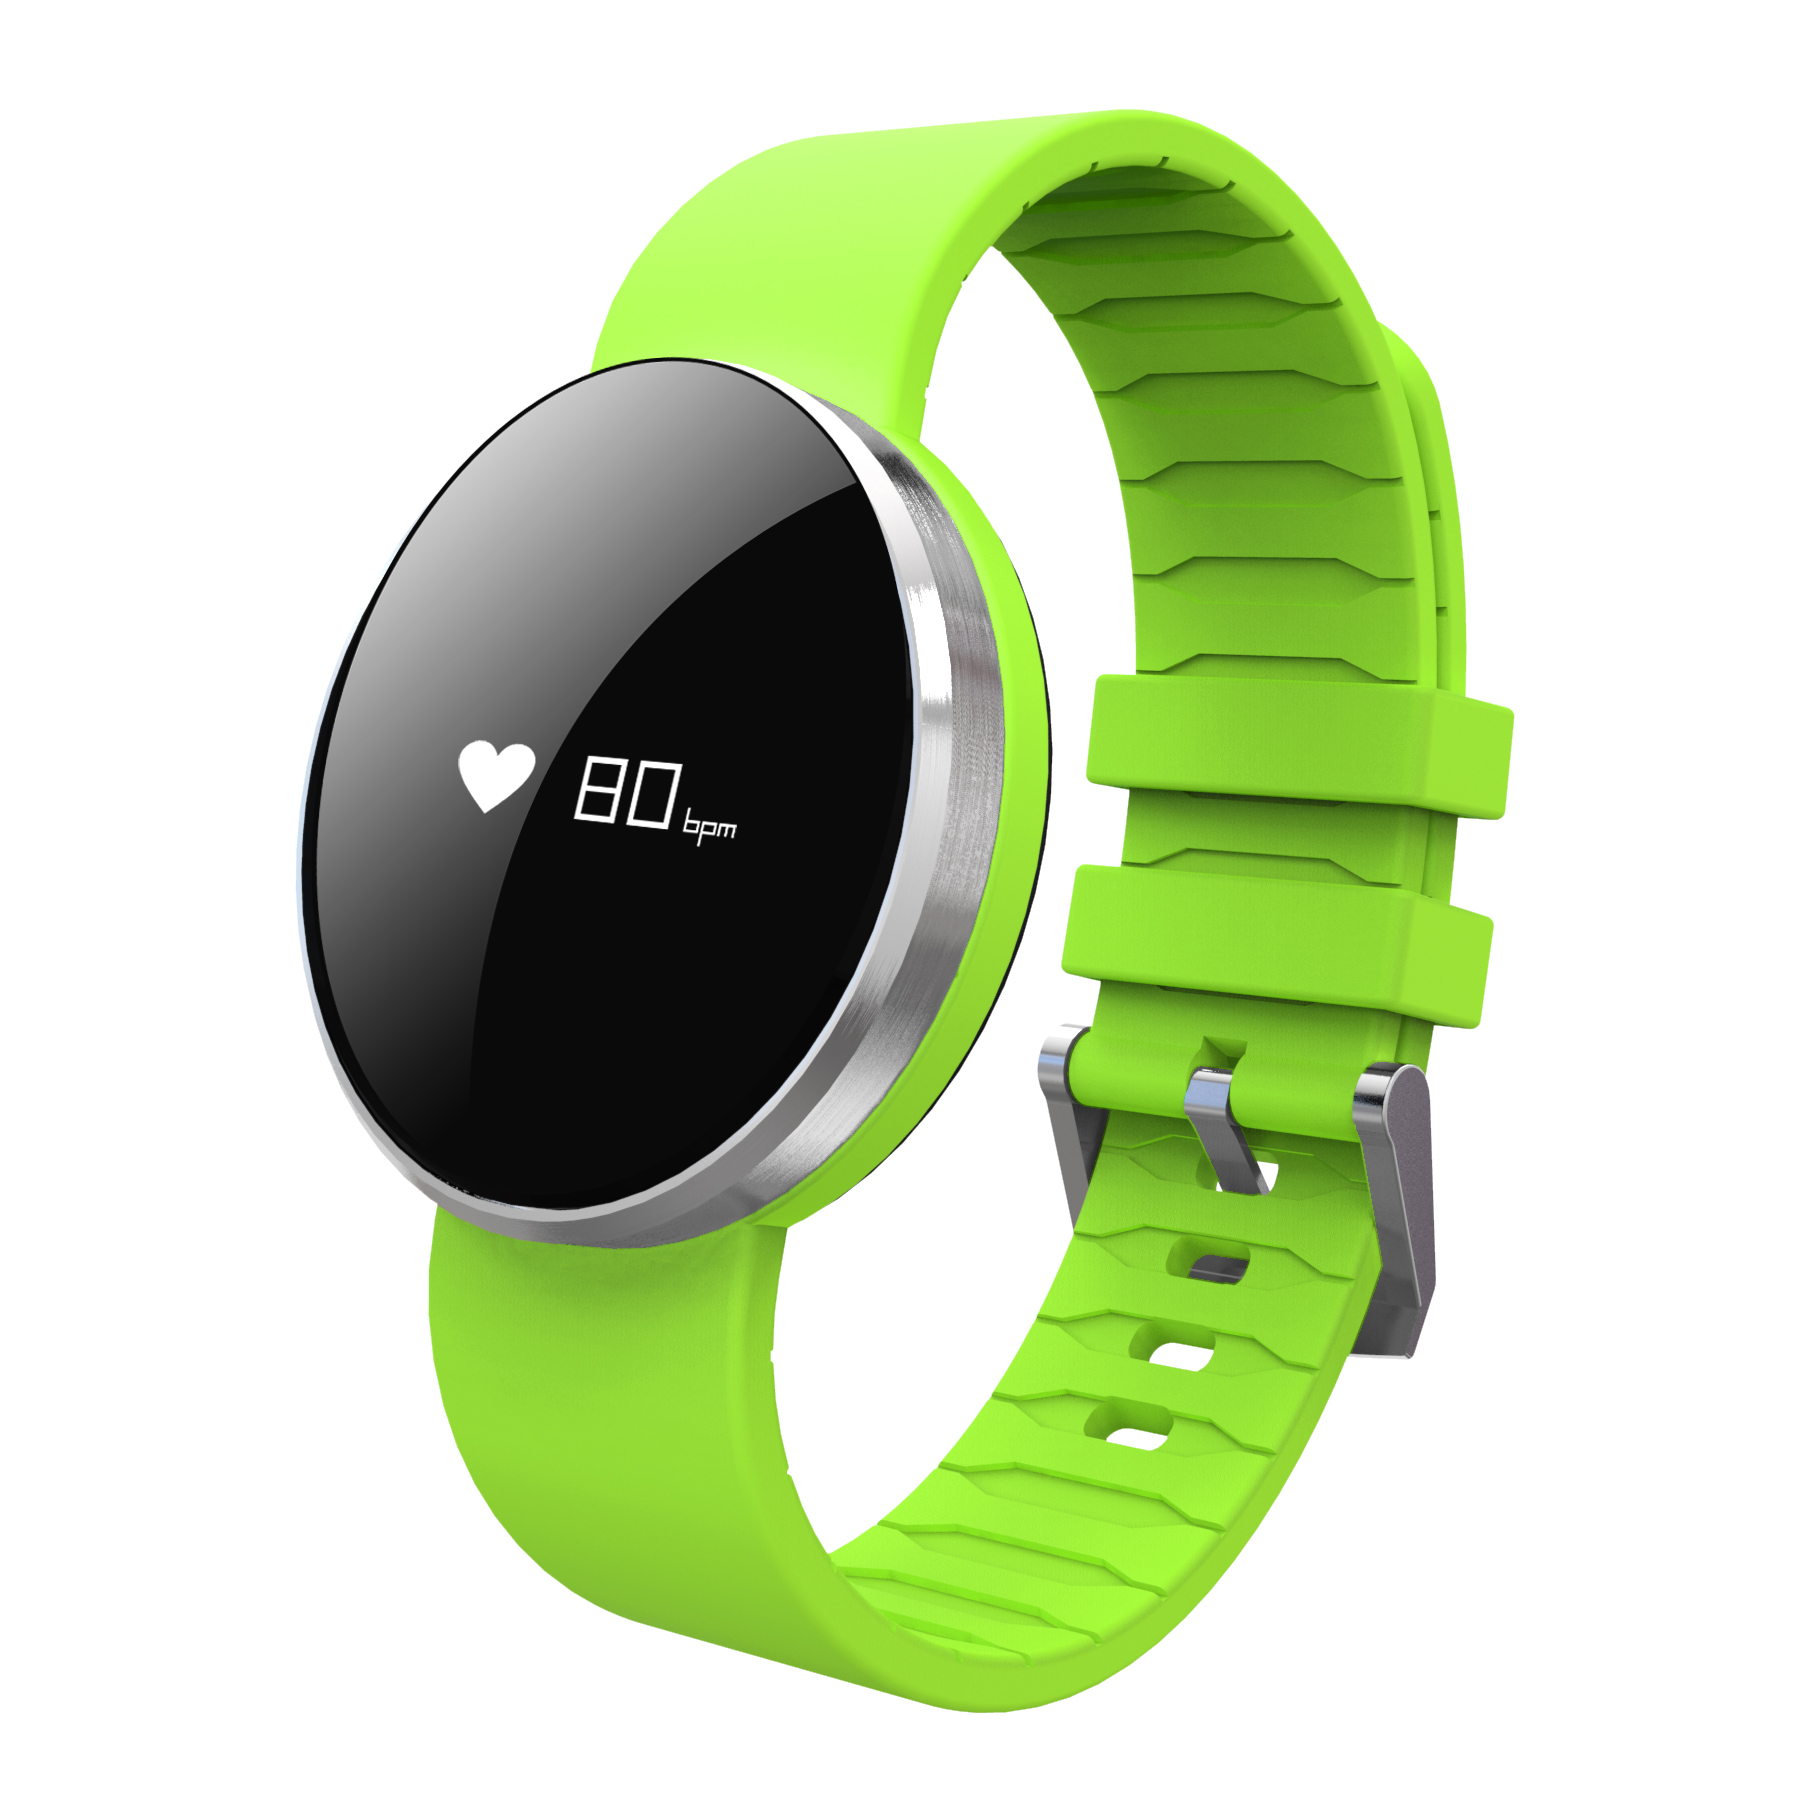 0.66inch screen smart watch with LED light Health data sync function bluetooth watch